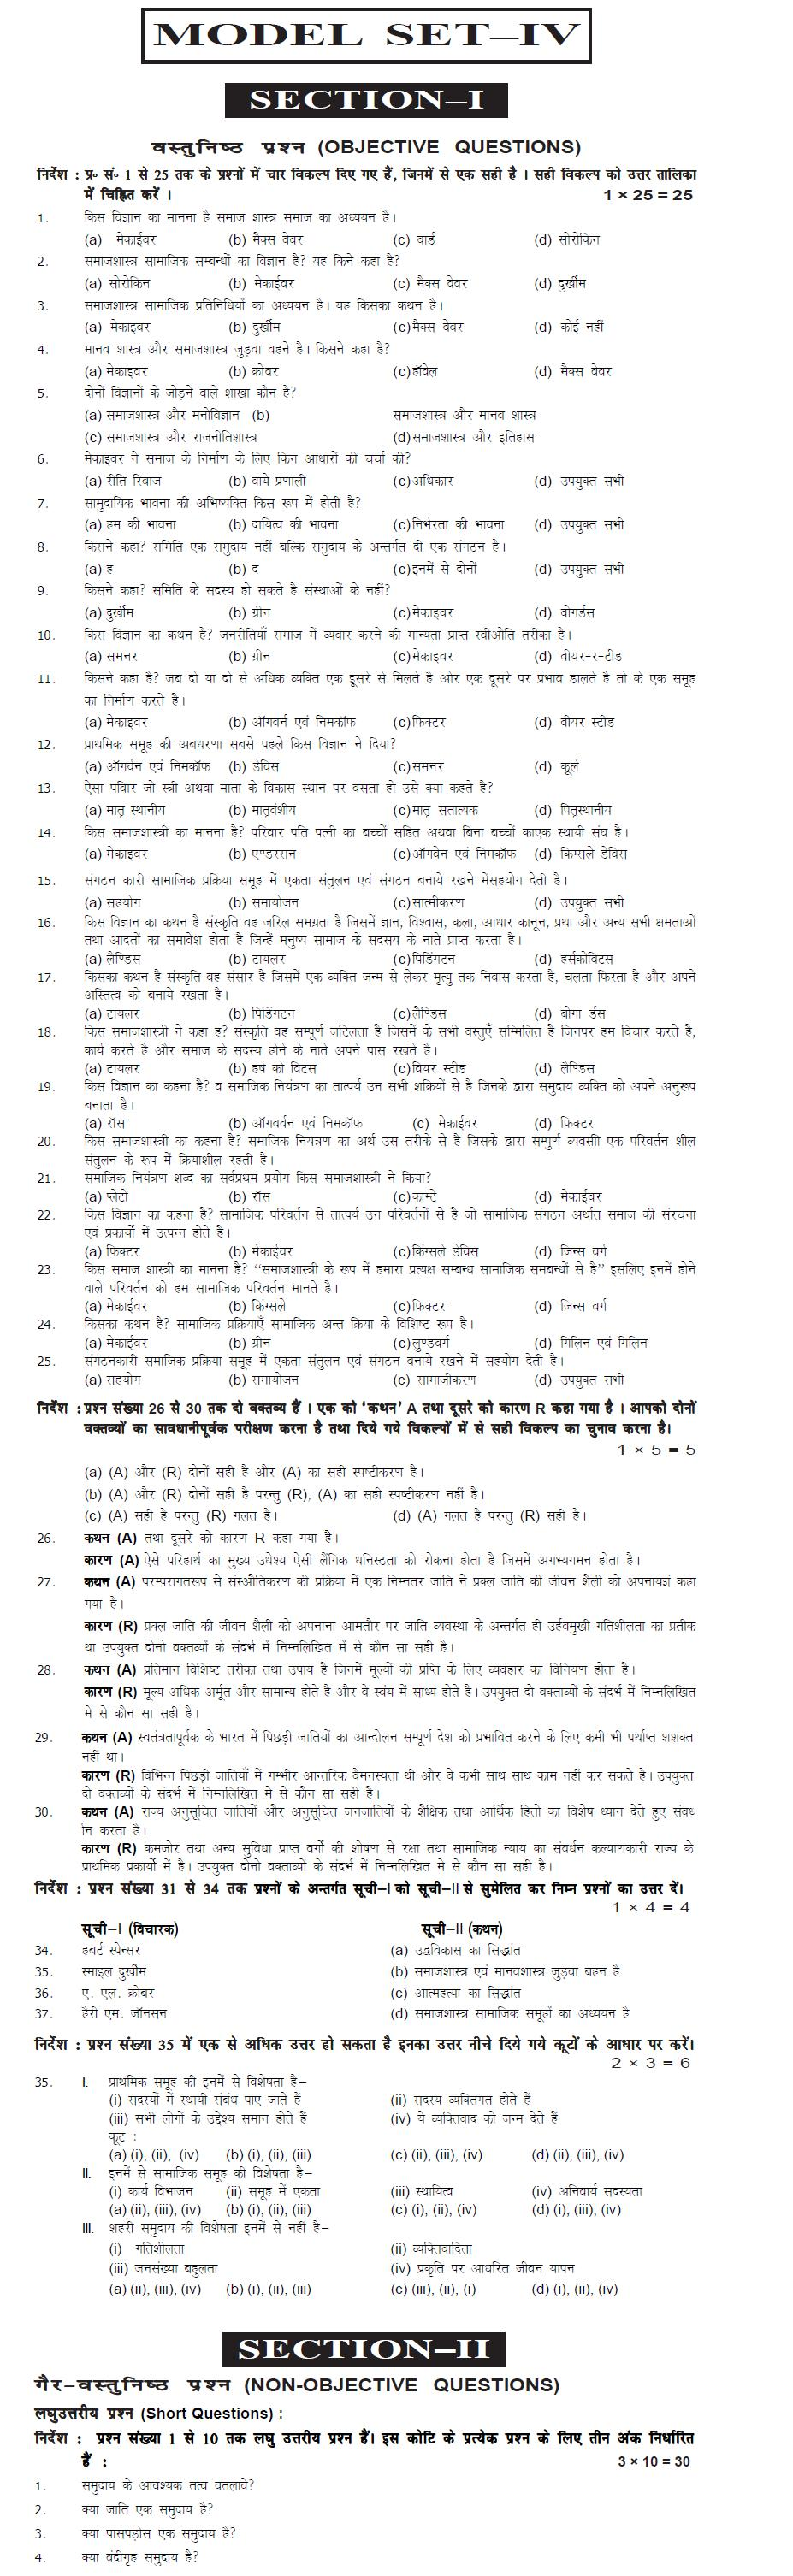 Bihar Board Class XI Arts Model Question Papers - Sociology